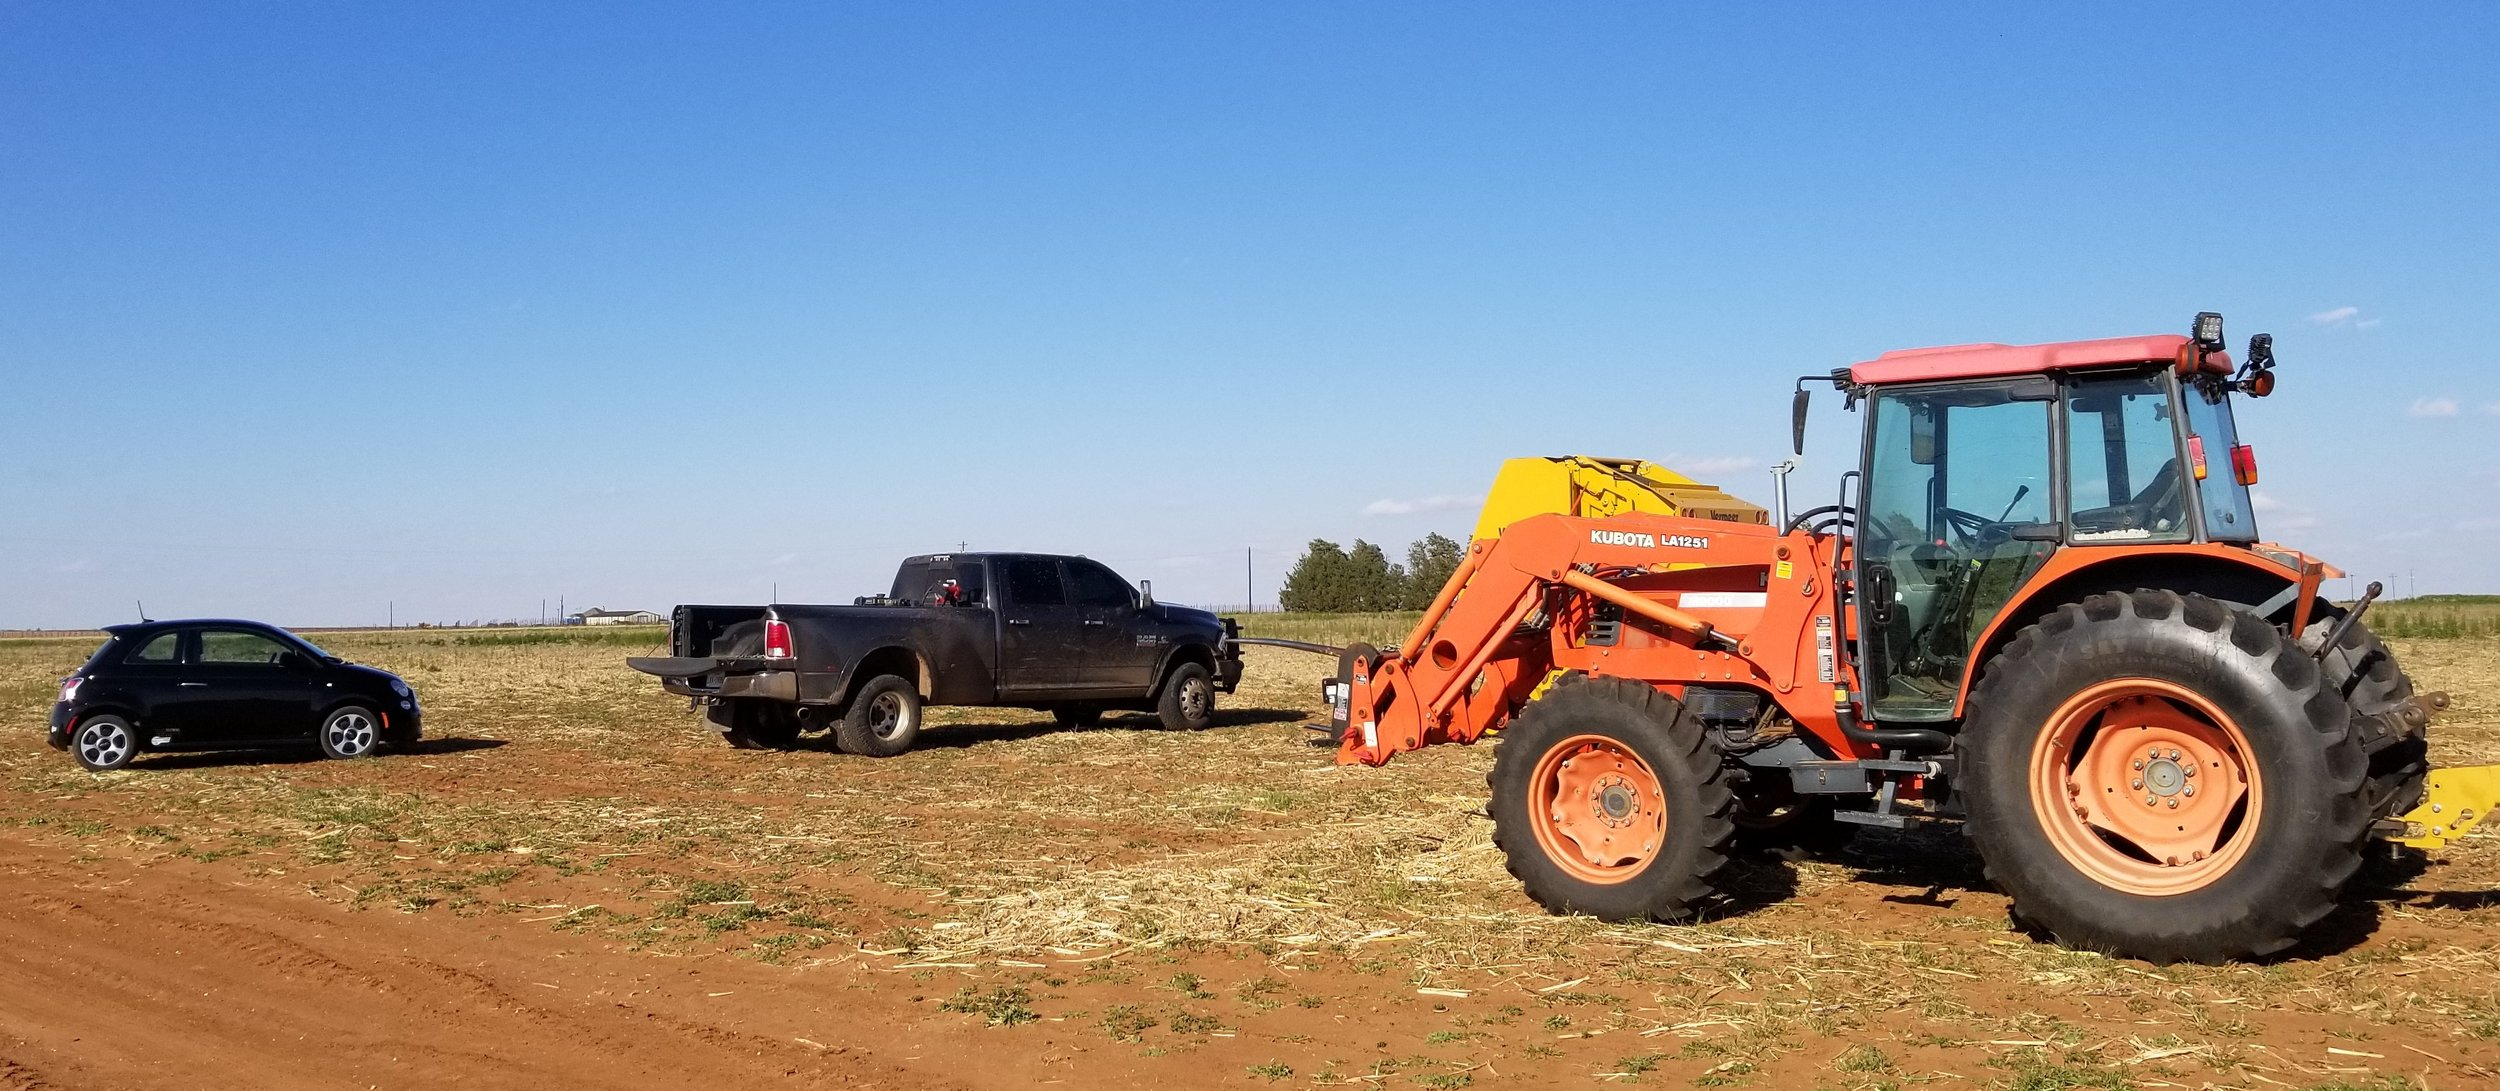 Our little fiat next to my brother's truck and loader